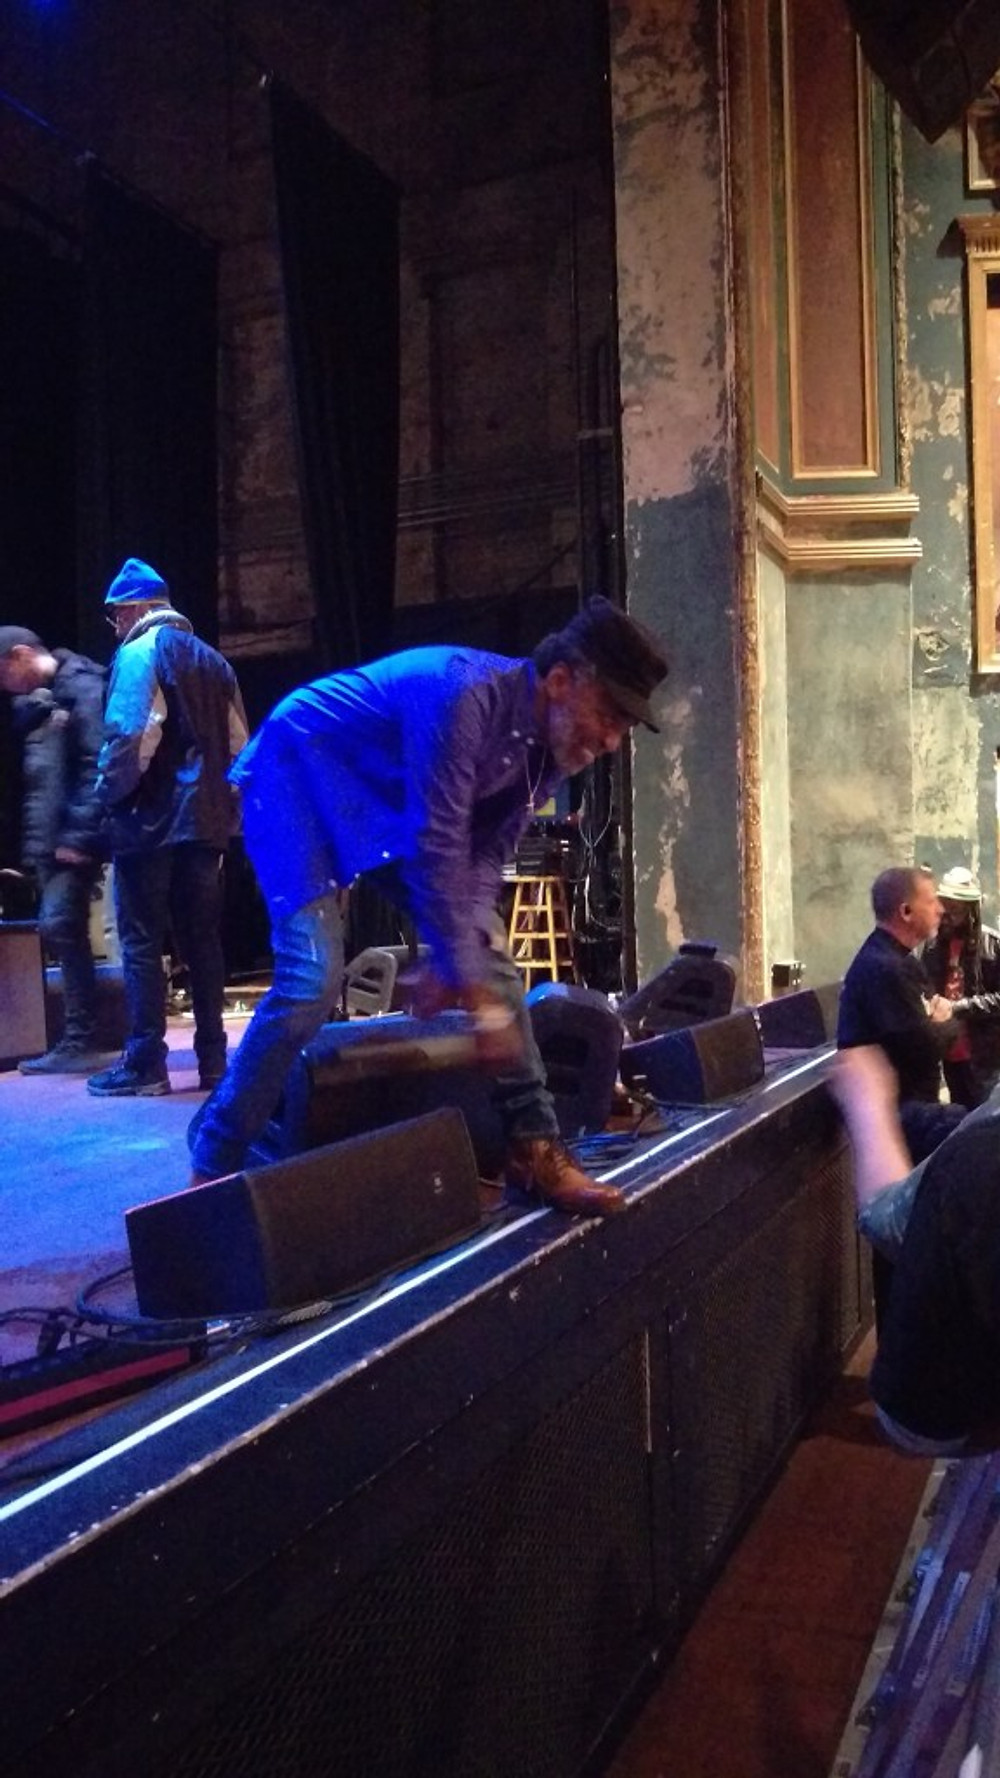 Donald Kinsey leaning over the stage to shake a fan's hand.